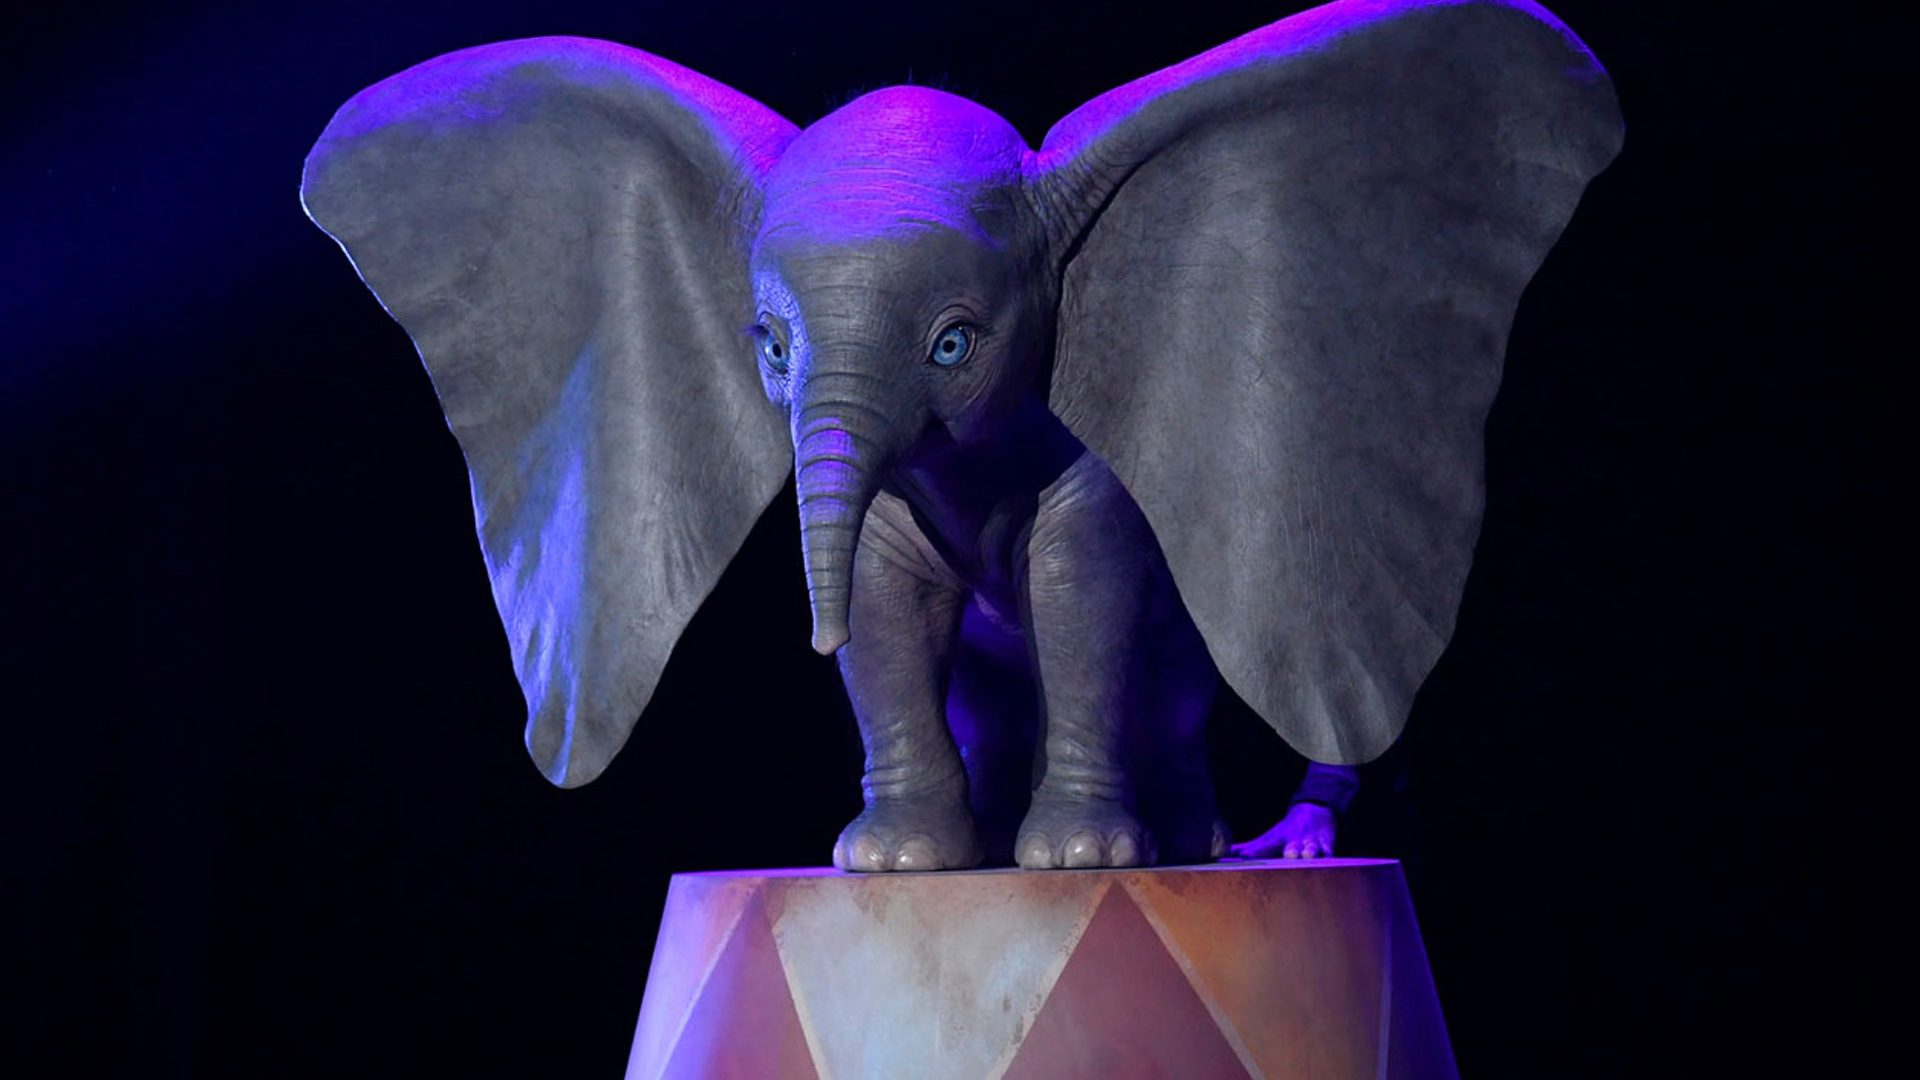 Tim Burton's 'Dumbo' Takes the Classic Disney Film to All-New Heights